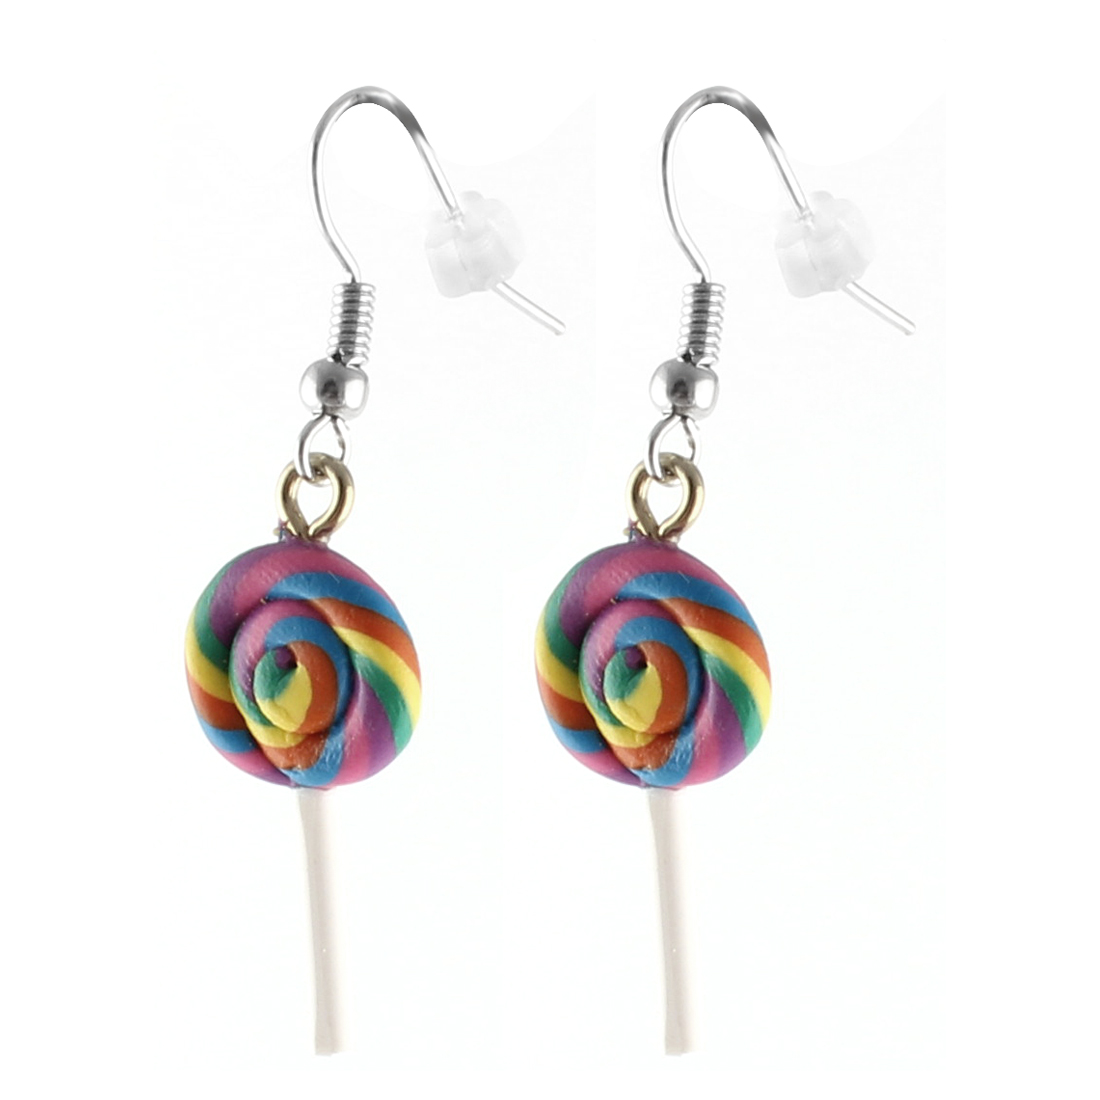 Pair Colorful Plastic Candy Pendant Ear Hook Earrings Dangling Jewelry for Lady